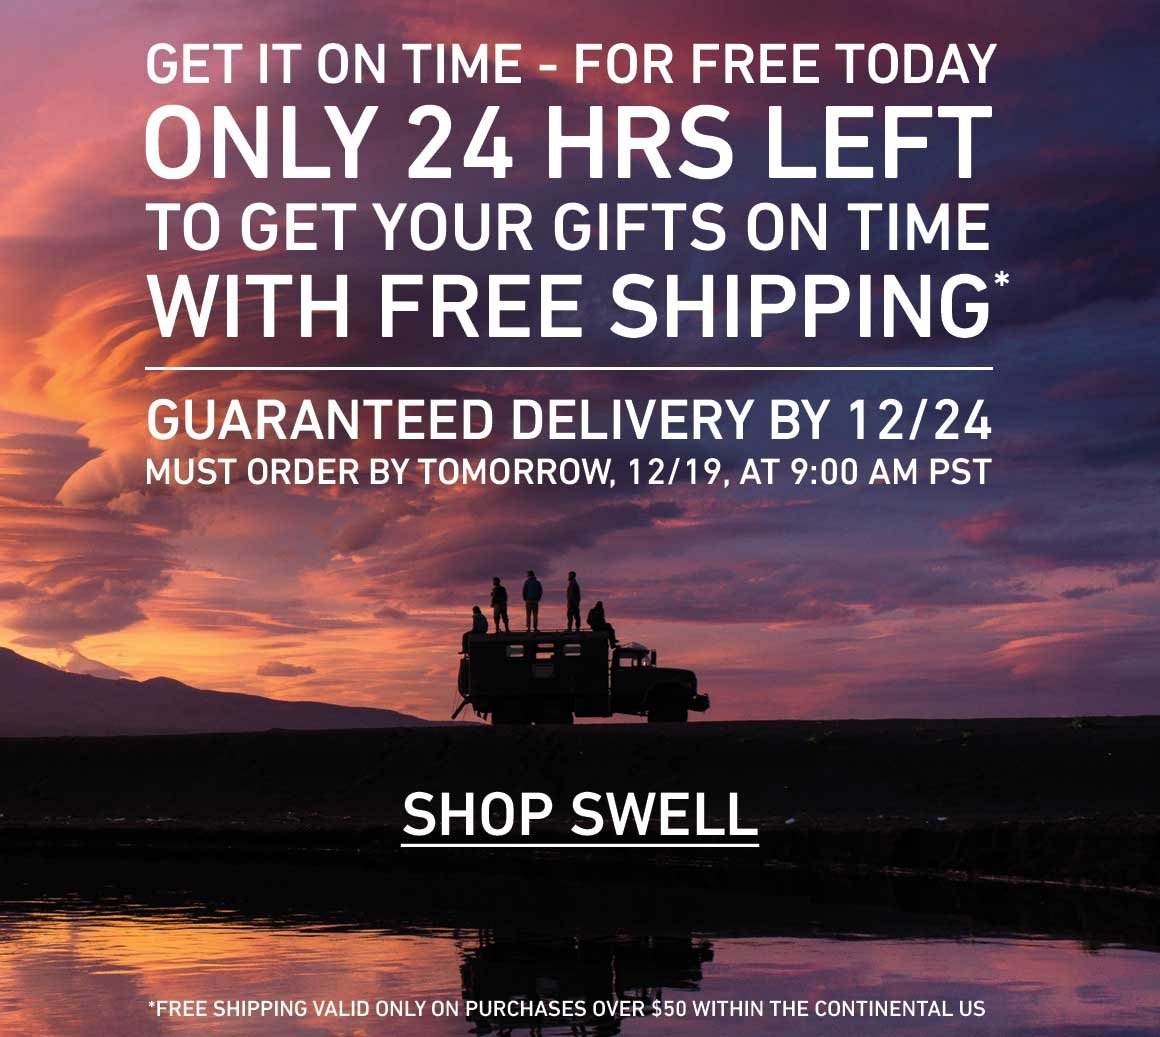 LAST DAY For FREE Guaranteed On-Time Shipping! Order by 12/19 at 9AM PST for Guaranteed 12/24 Delivery